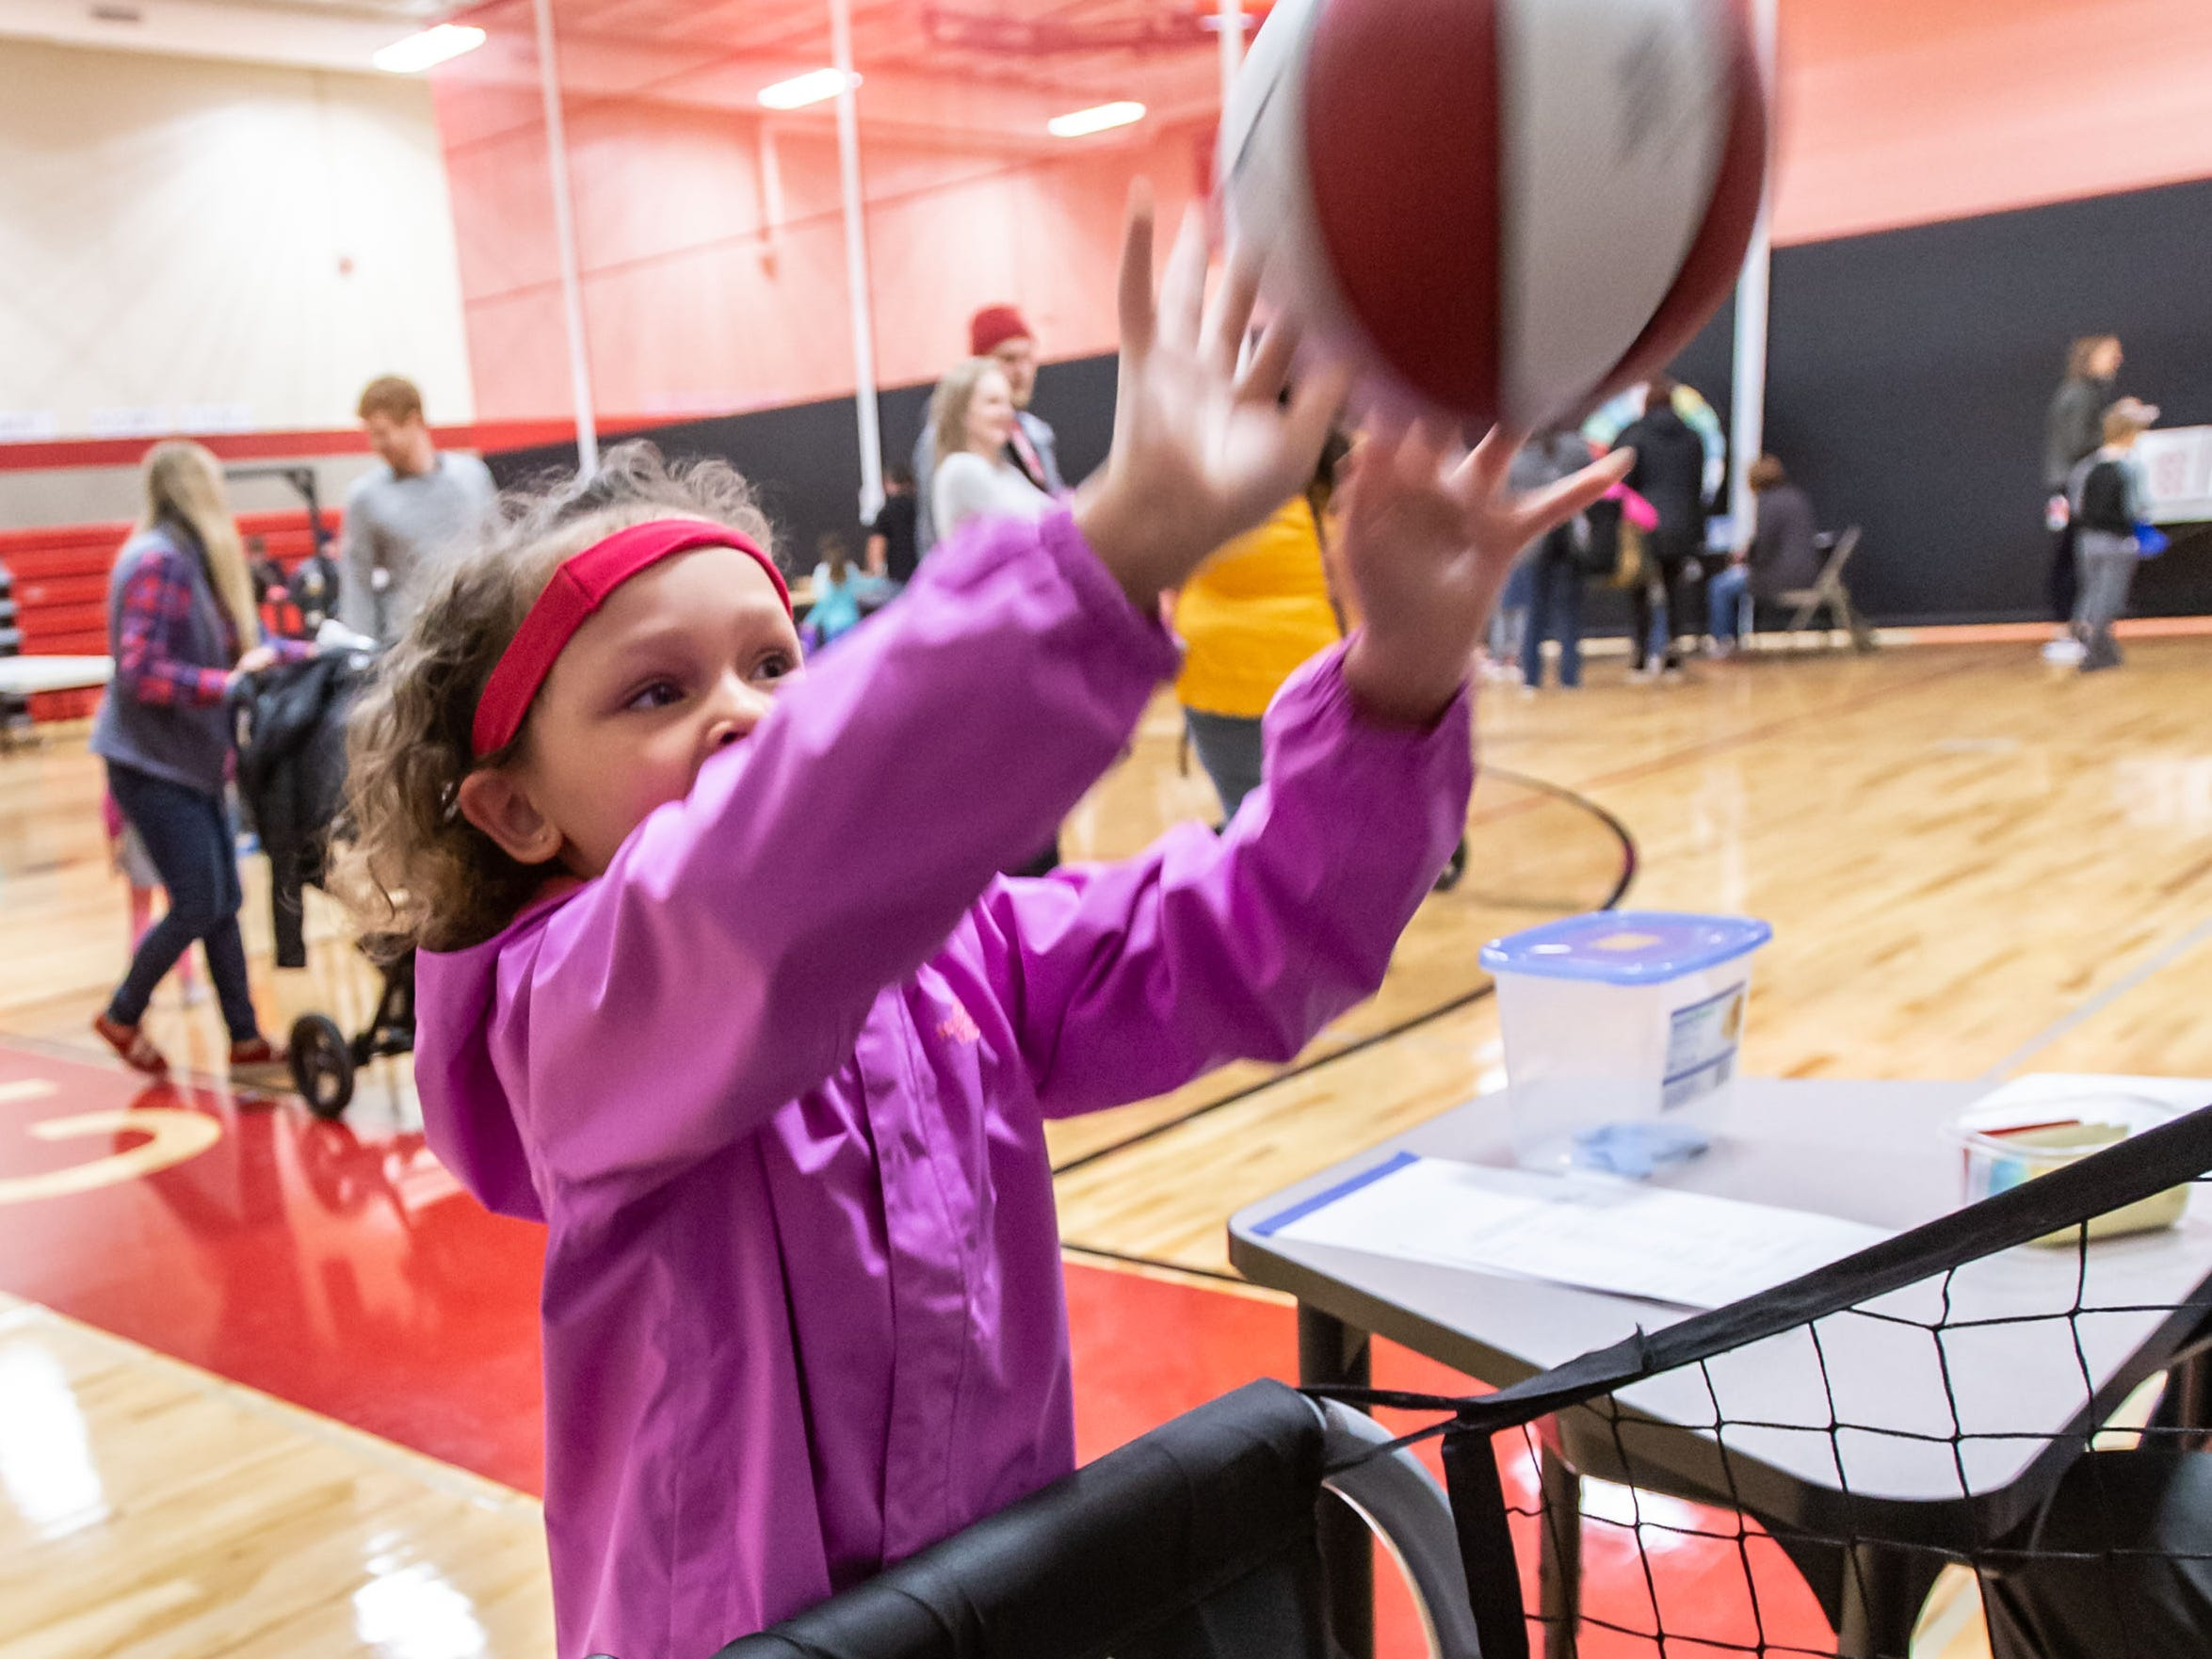 Five-year-old Kallie Mason of Watertown plays a basketball game during the Winter Carnival at St. Matthew's Lutheran School in Oconomowoc on Saturday, March 9, 2019. The event featured a huge prize booth, games, food, a silent auction and more. Proceeds from the Winter Carnival will be used to purchase non budgeted school items.